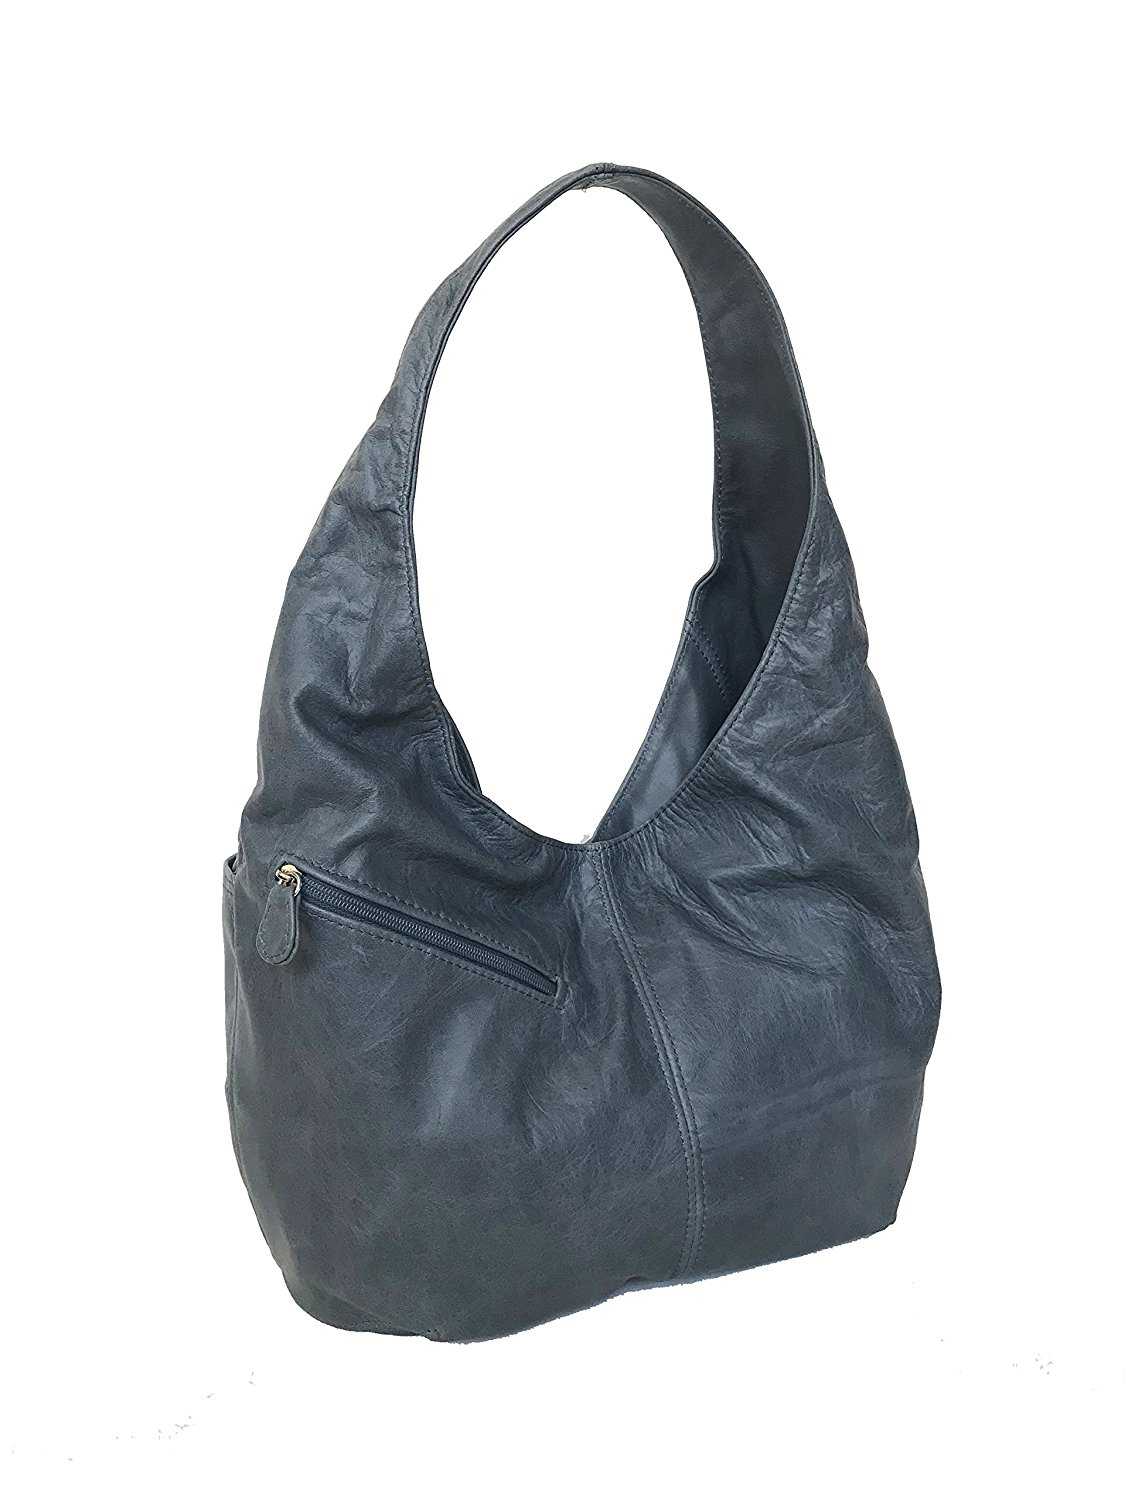 37b4bc8728 Get Quotations · Fgalaze Distressed Leather Hobo Bag Purse with Pockets